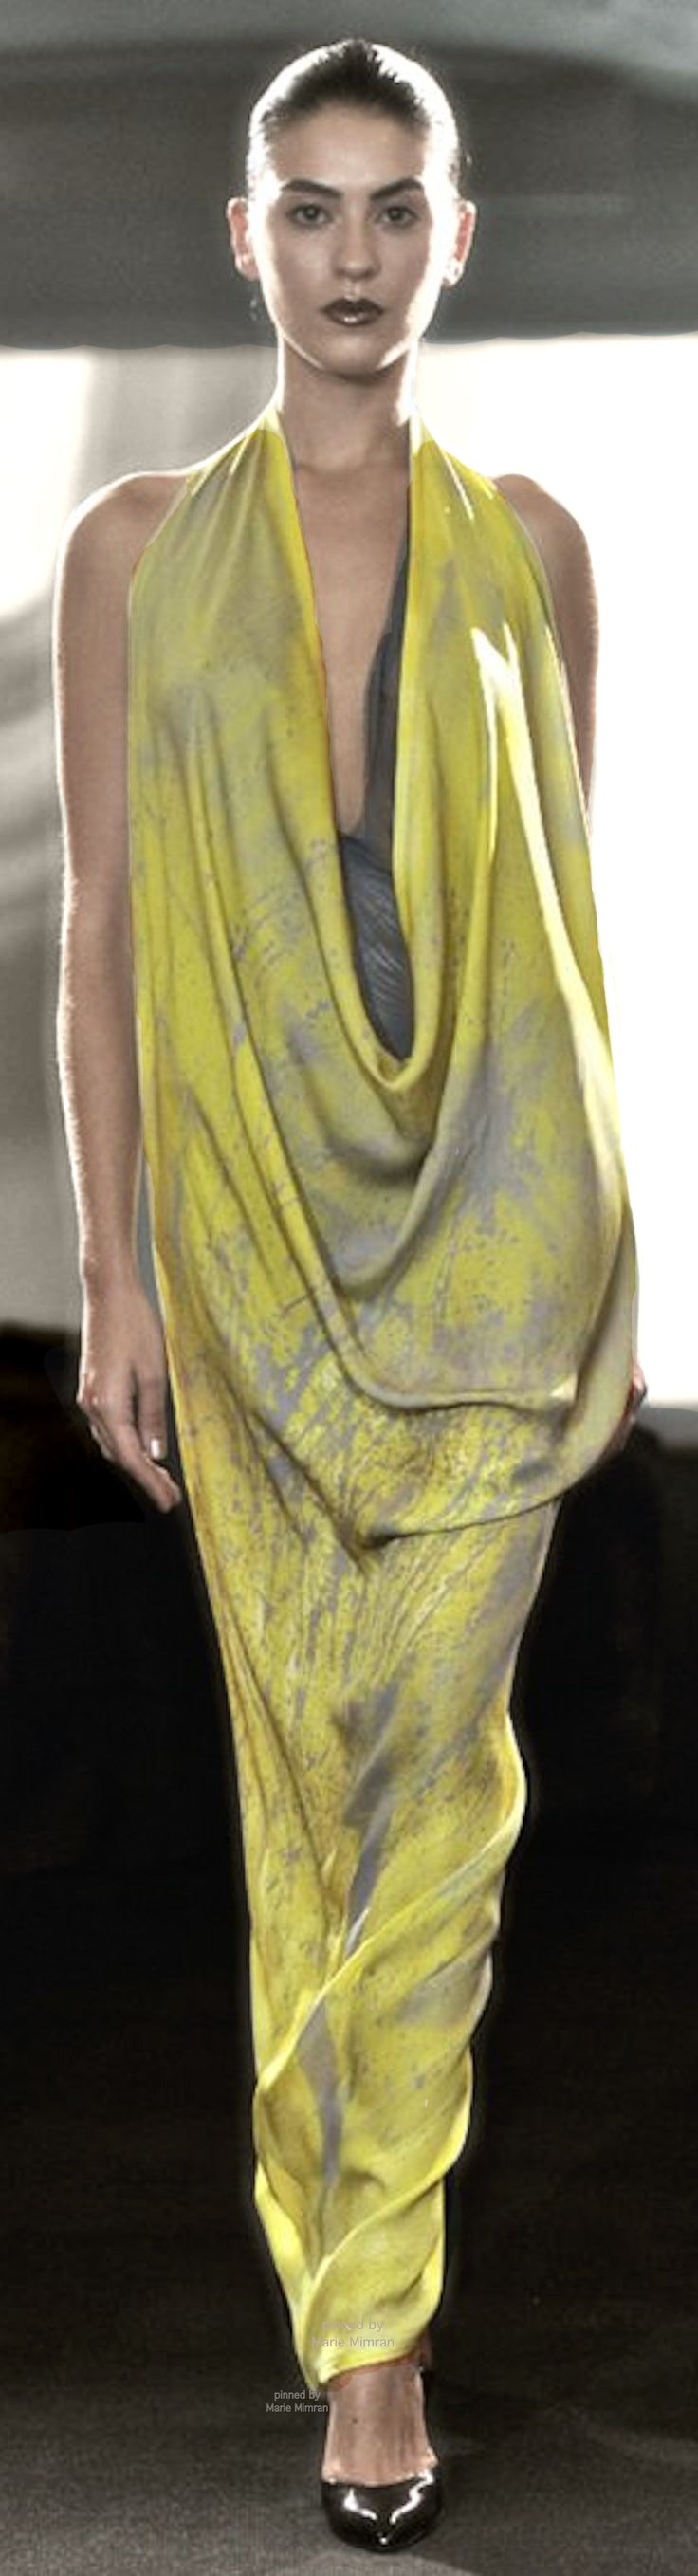 204 best Color: Grey & Yellow images on Pinterest | Gray yellow ...